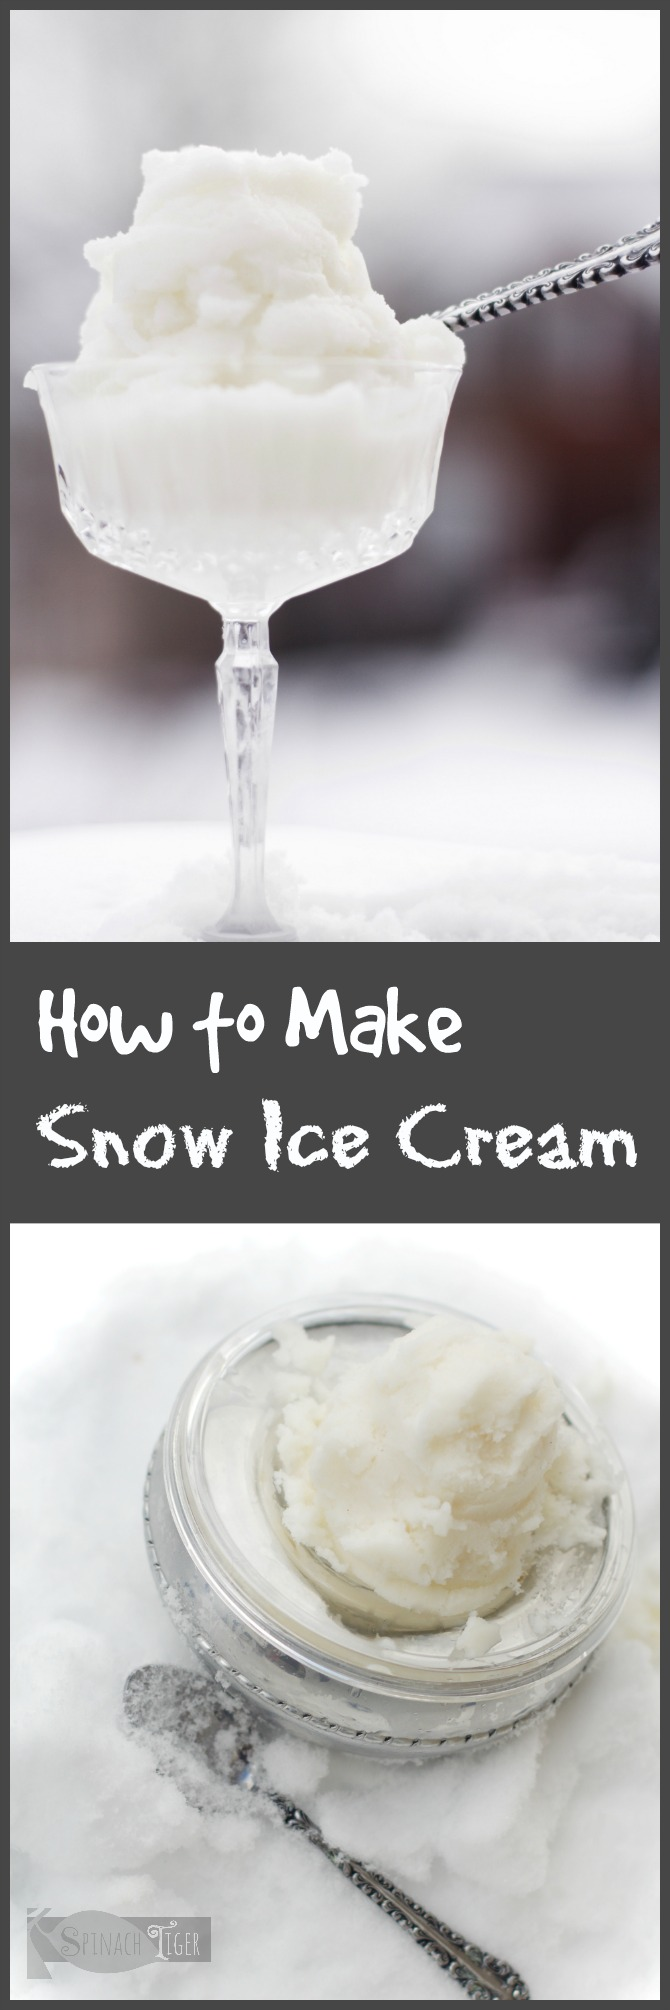 Low Calorie Snow Ice Cream from Spinach Tiger